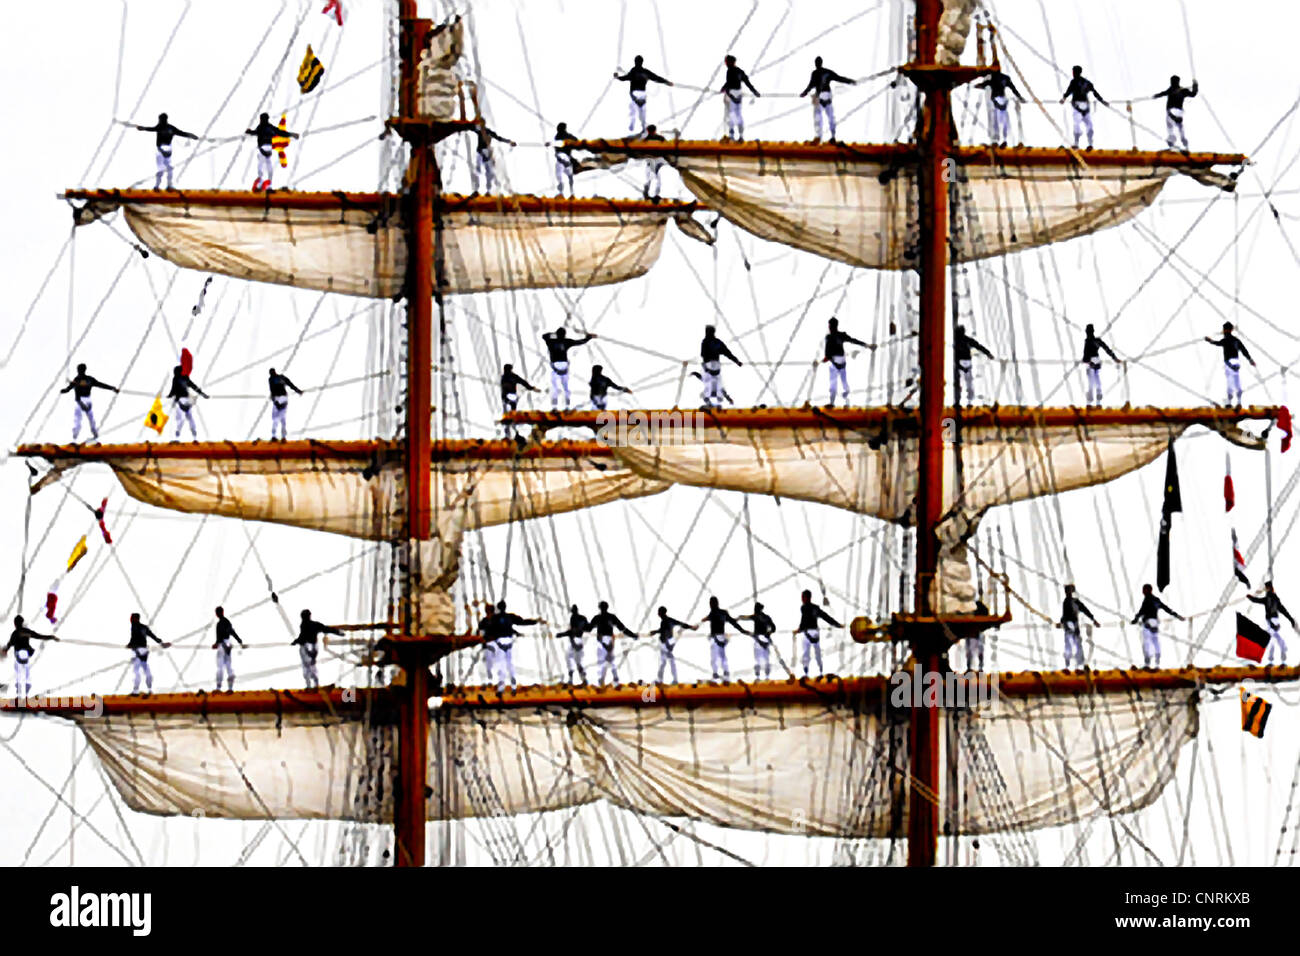 Ecuadorian sailors of the Ecuadorian tall ship BAE Guayas man the yardarms as they arrive in New Orleans for the - Stock Image